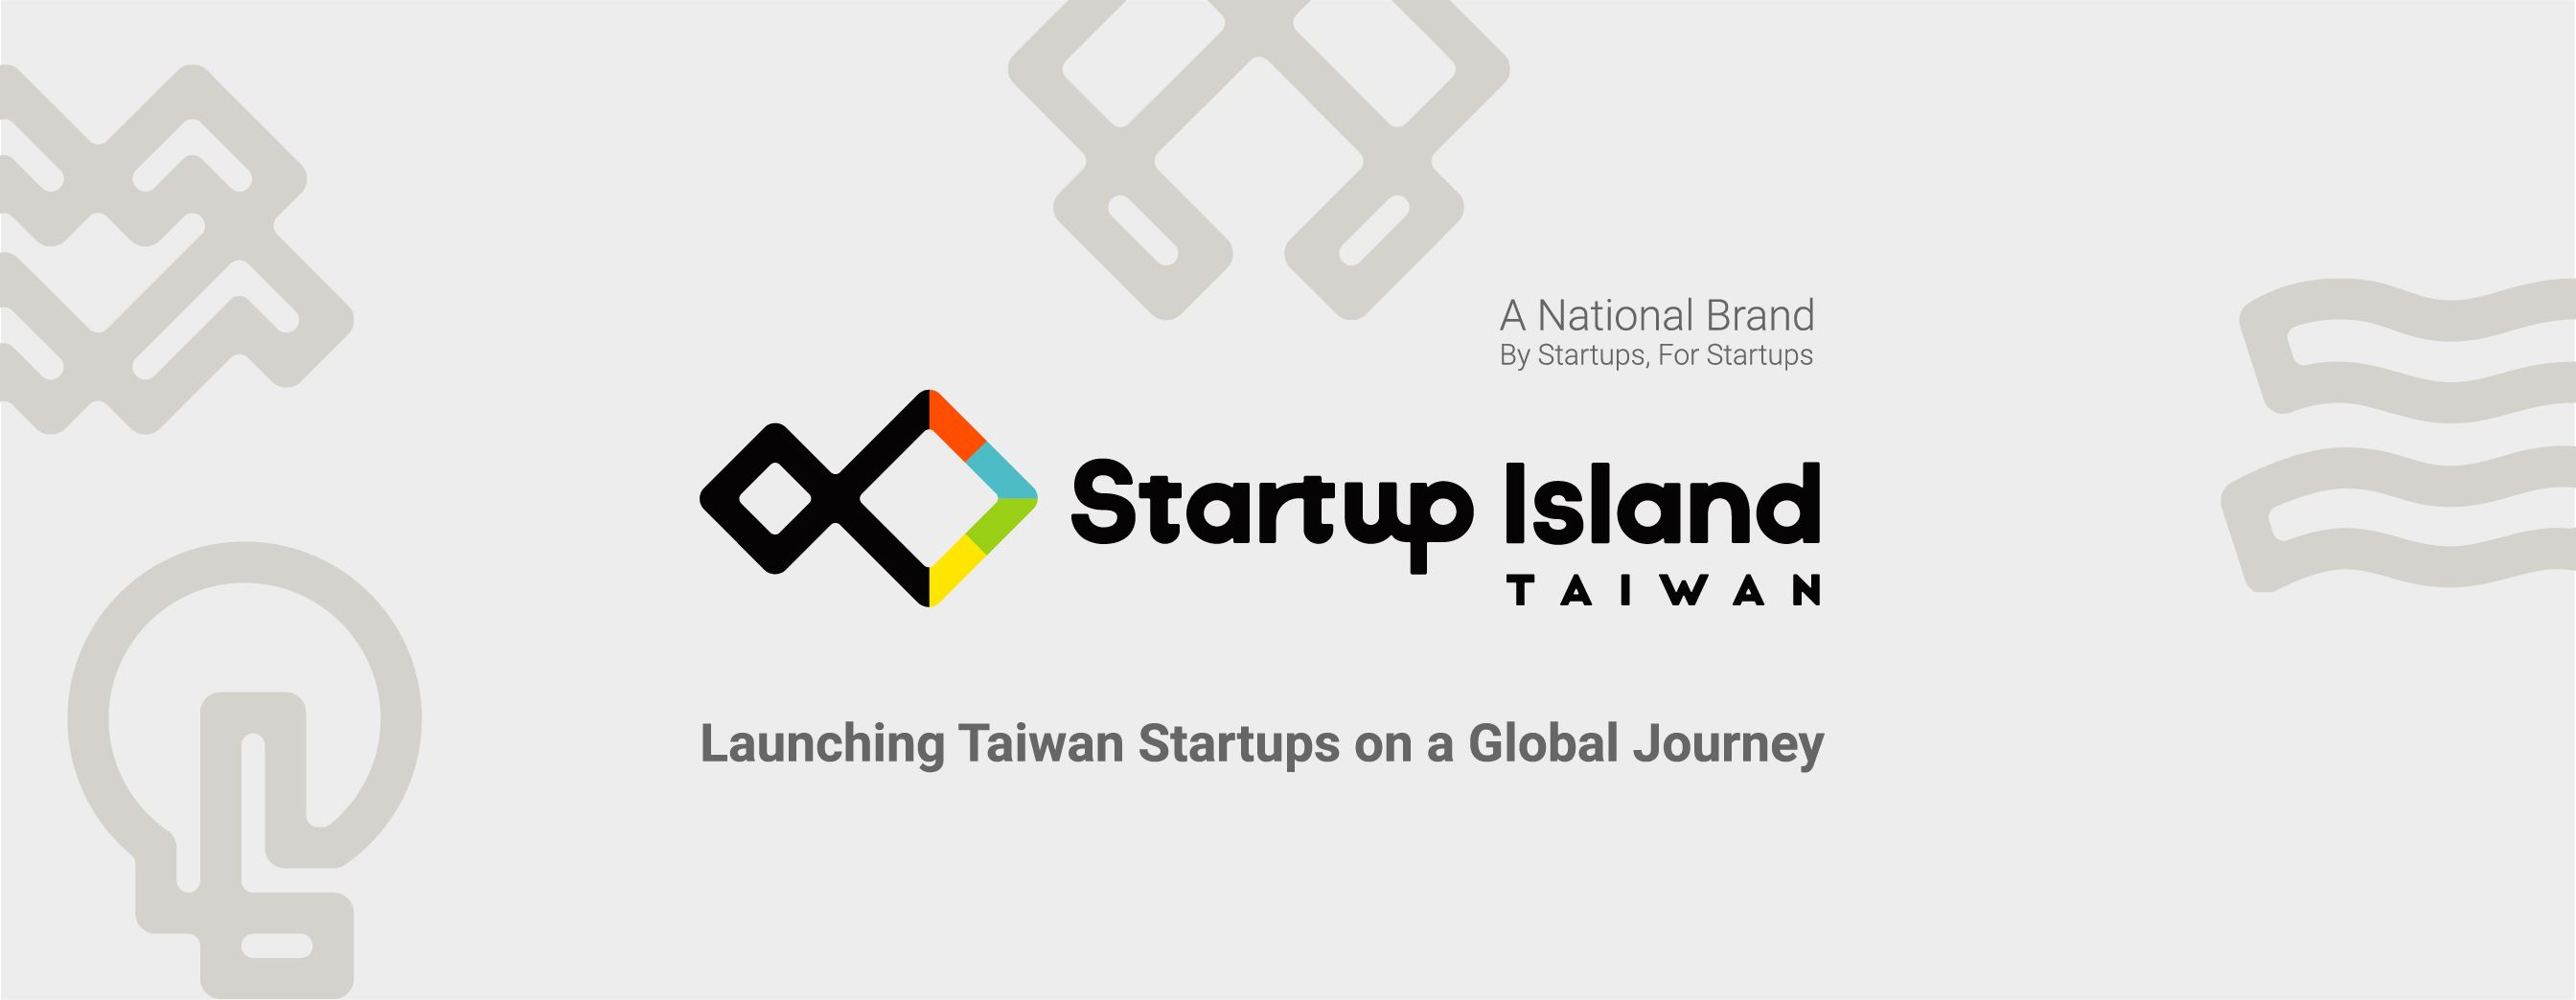 Origin and Background